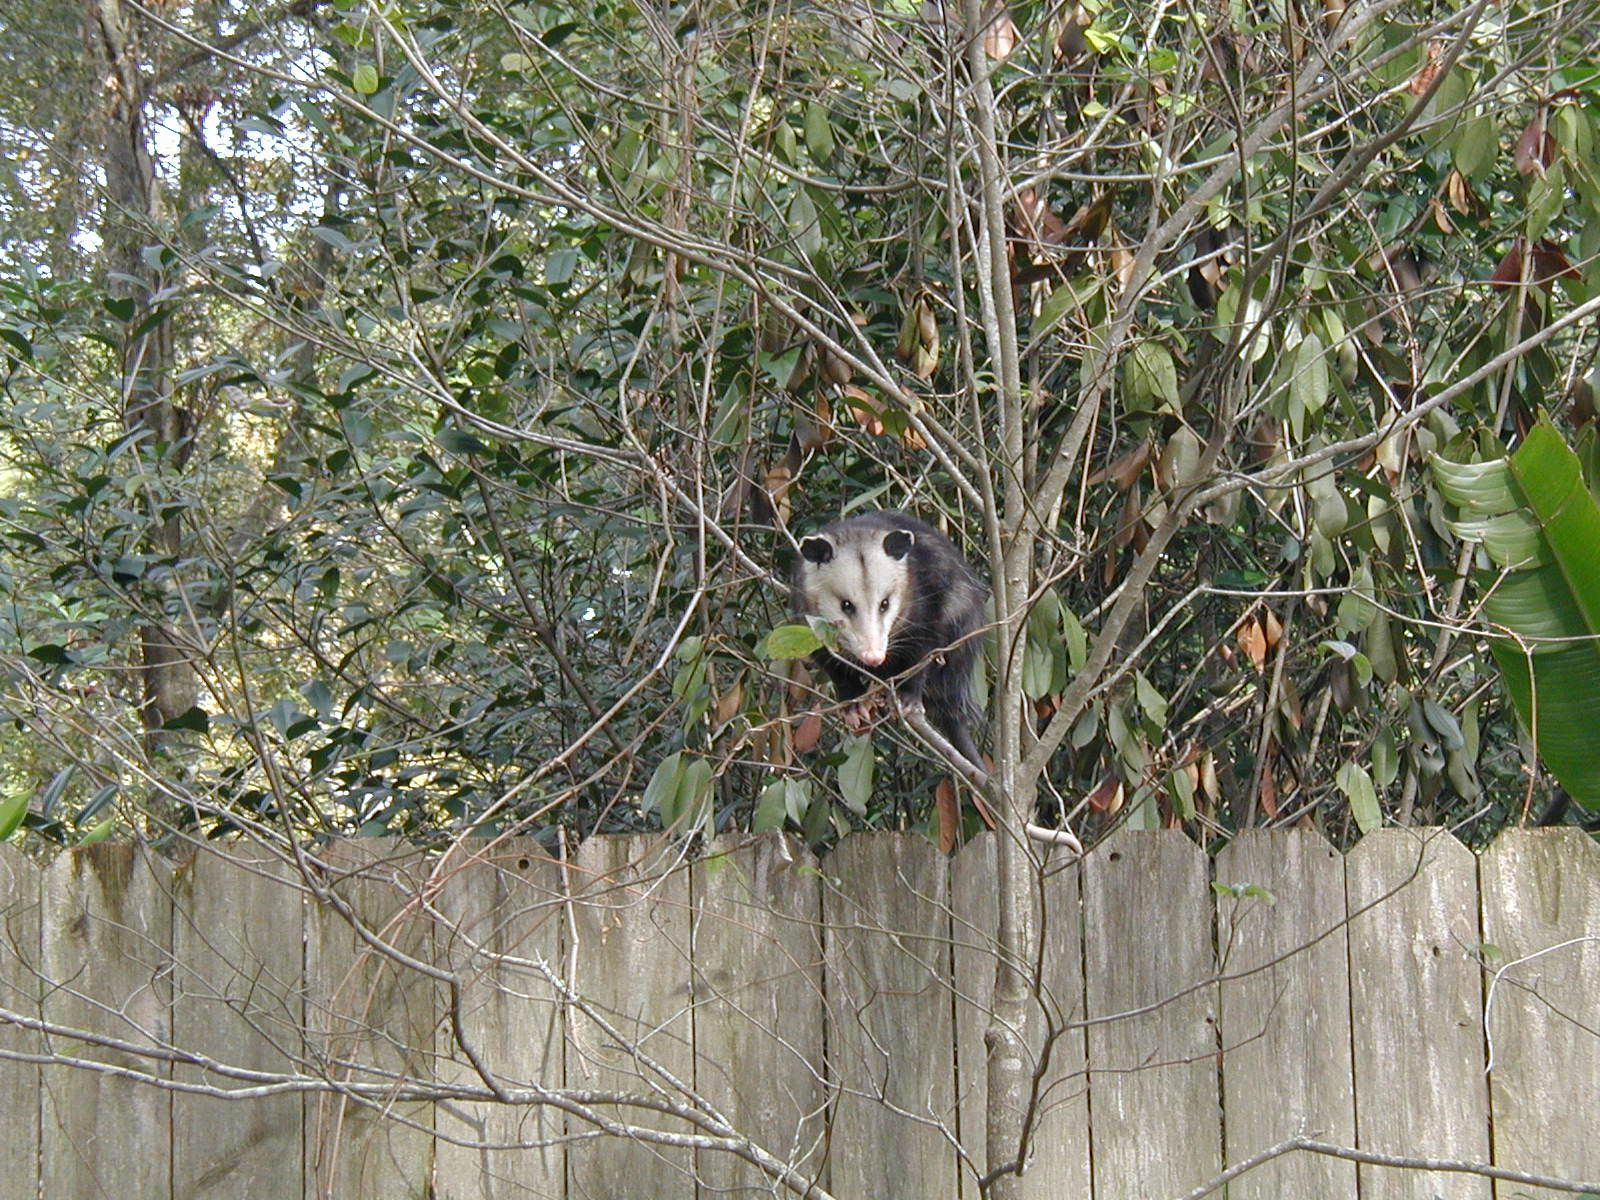 A possum in the back yard | Animals, Birds, Bald eagle